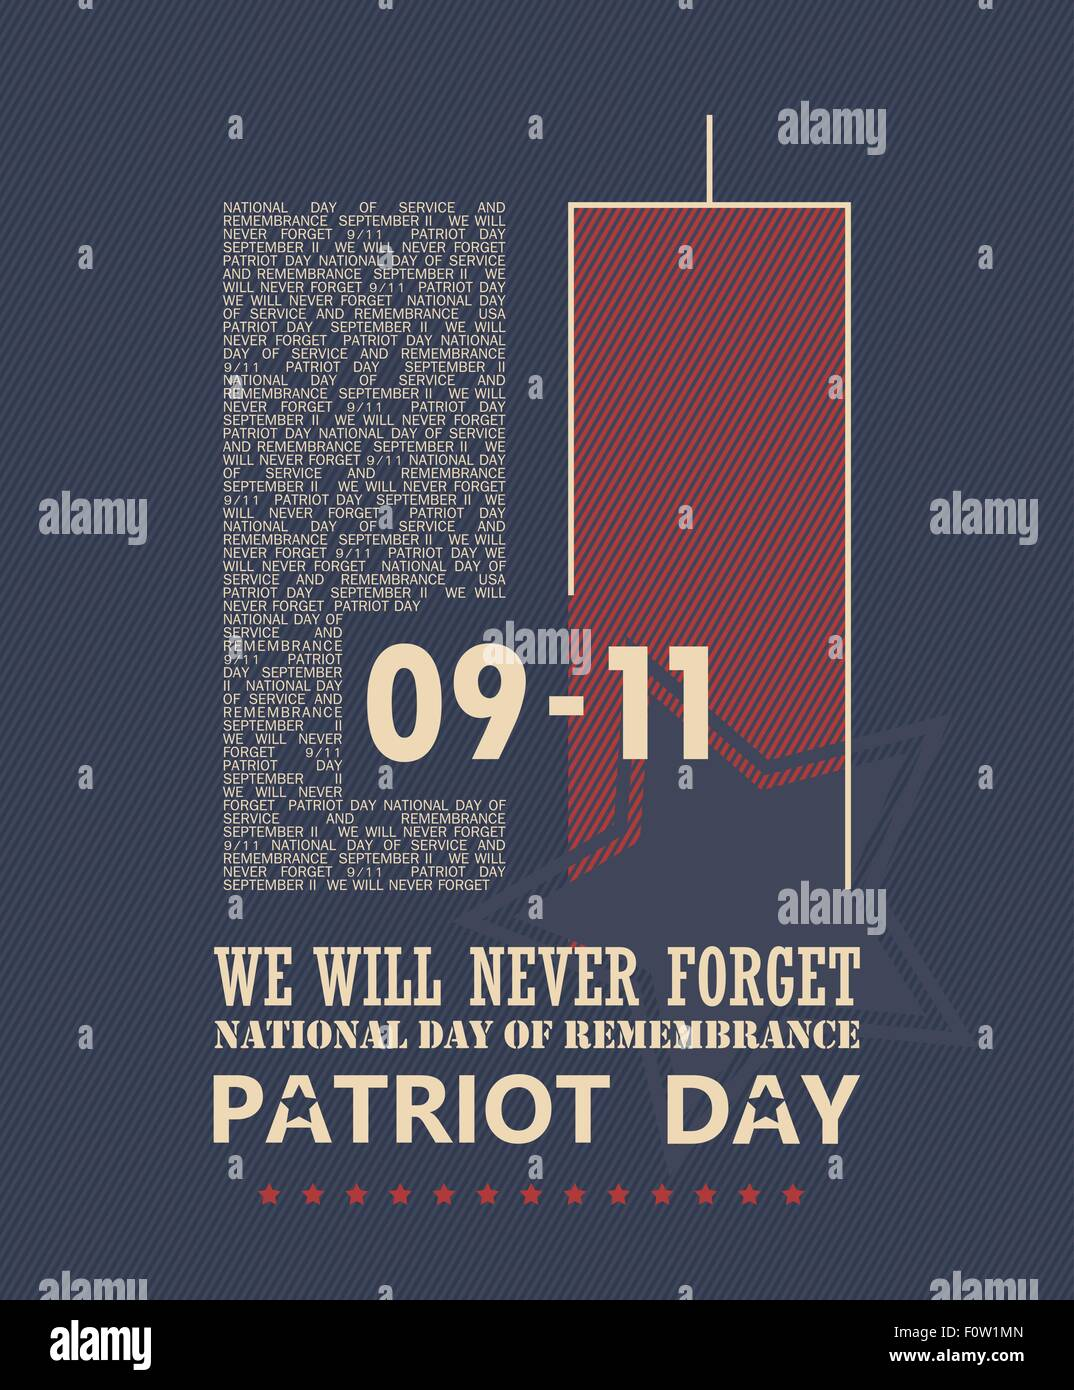 9/11 Patriot Day, September 11. Never Forget. National day of remembrance. - Stock Vector